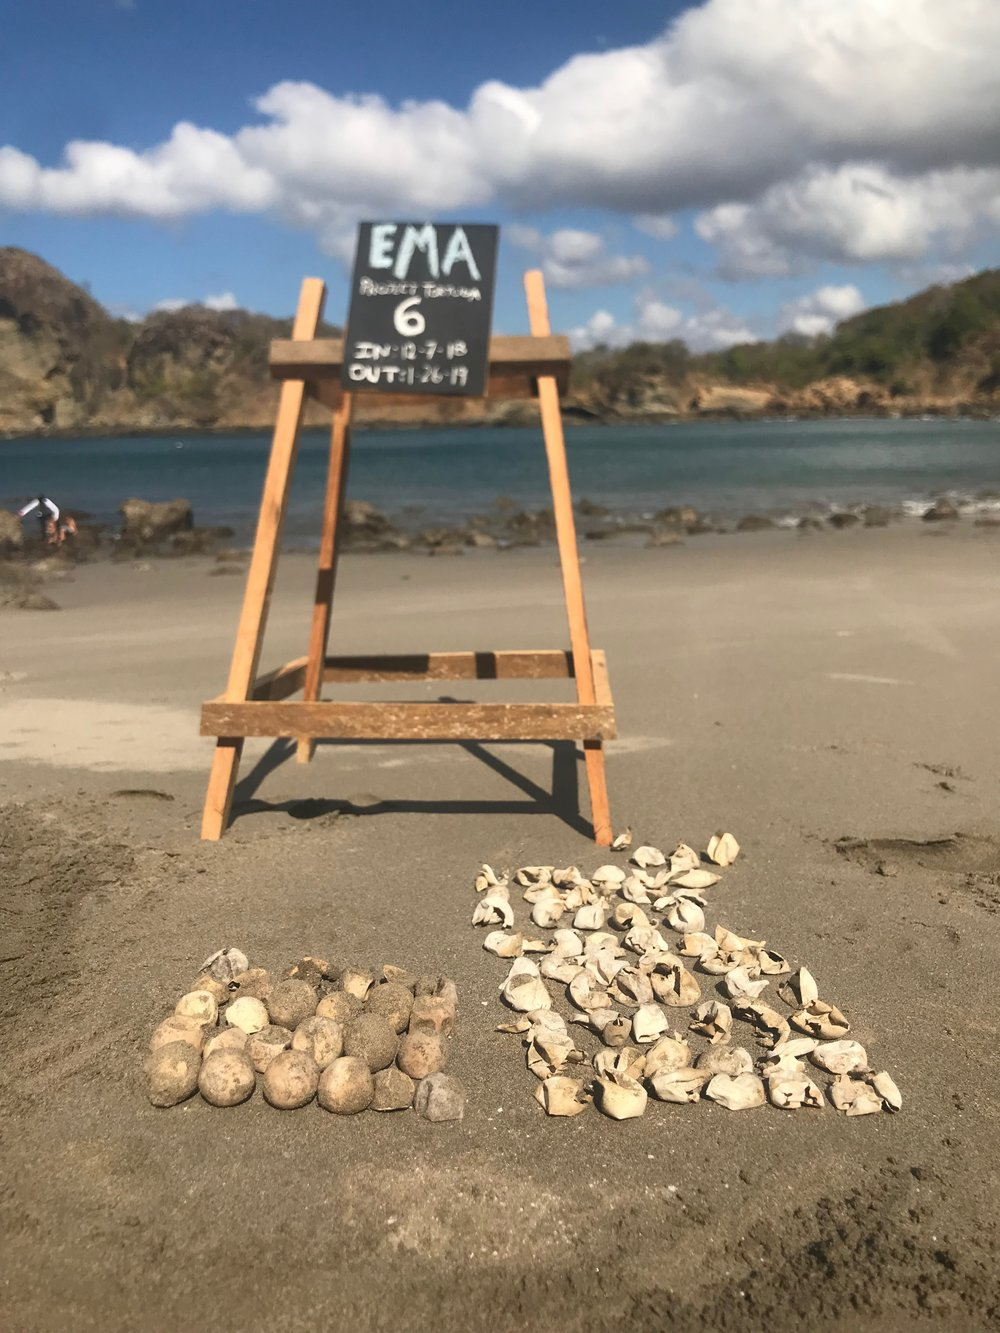 Project: Tortuga is run from Tola, Nicaragua.    Here is the data from this excavated nest:  82 total eggs excavated  57 hatched eggs  18 unhatched and completely intact eggs  7 broken eggs  0 dead in nest  0 live and stranded hatchlings